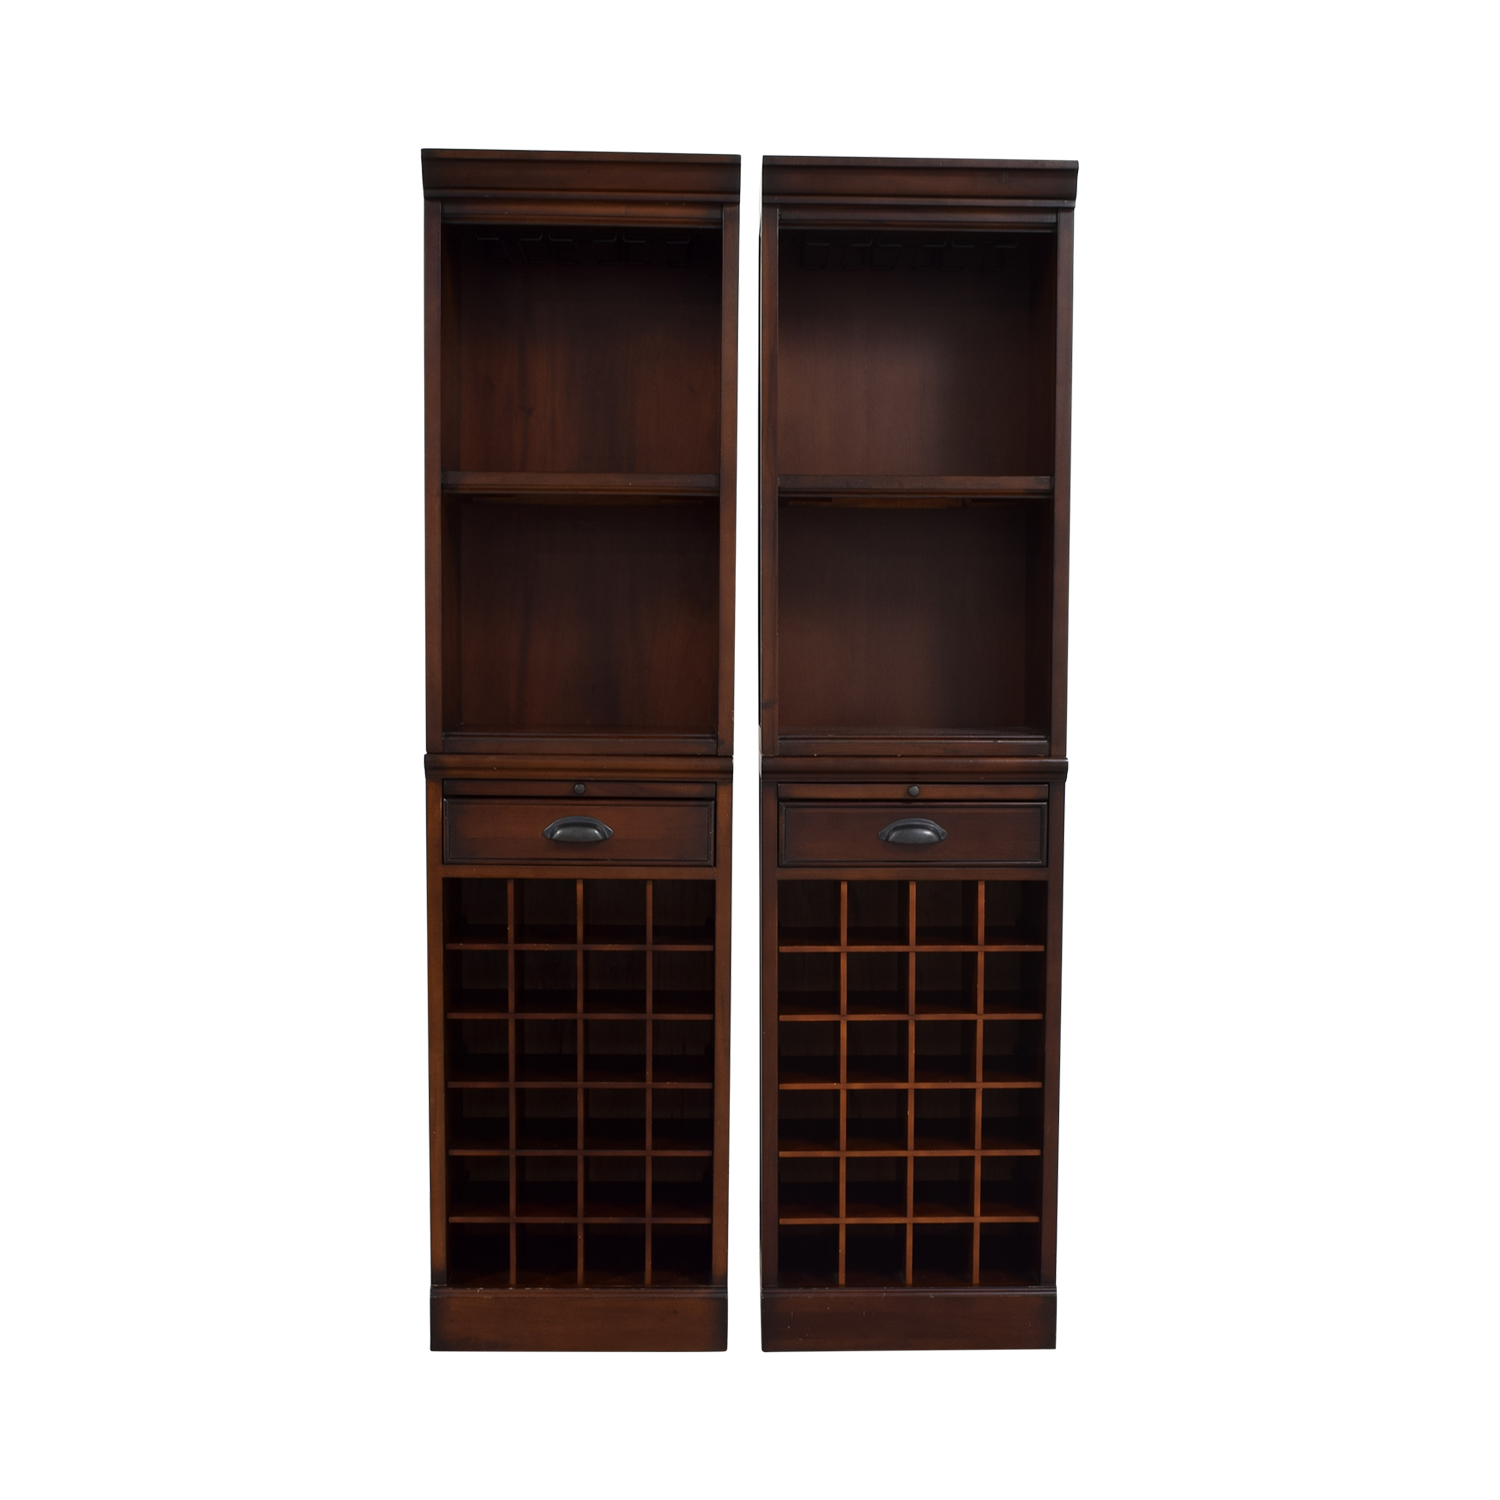 Pottery Barn Pottery Barn Modular Wine Towers dimensions